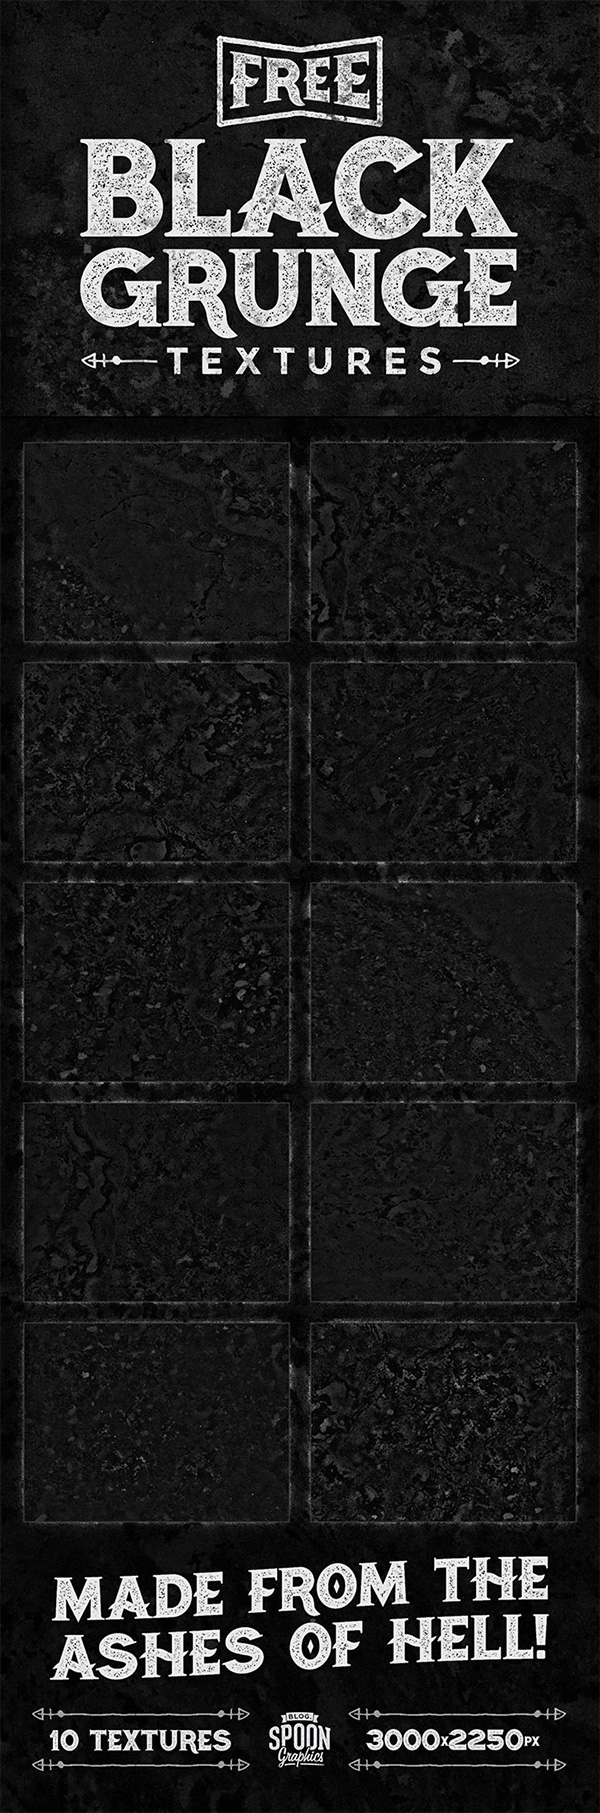 10 Free Black Grunge Textures Made From The Ashes of Hell